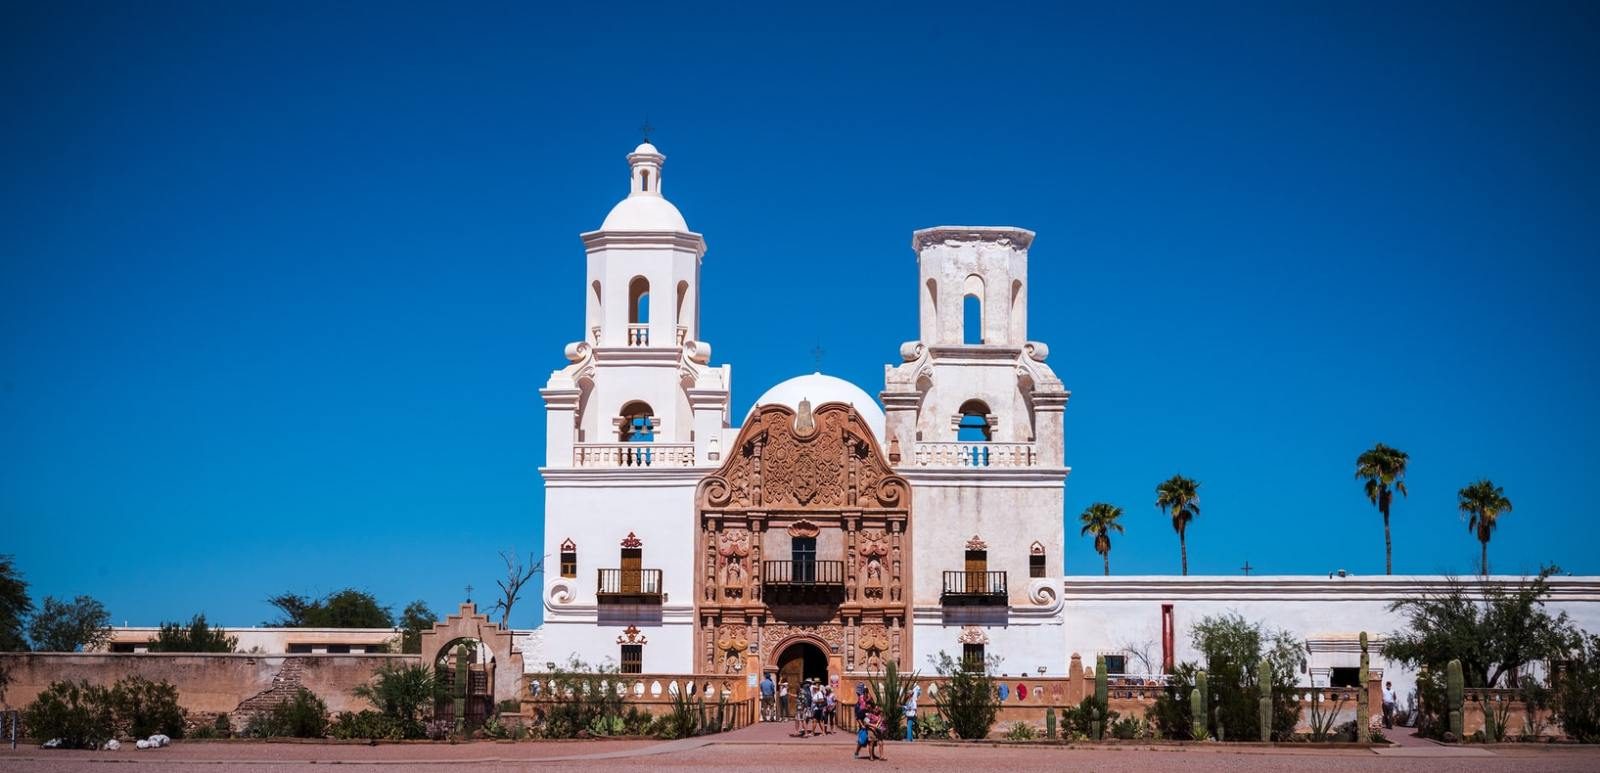 The Best Areas to Stay in Tucson, AZ